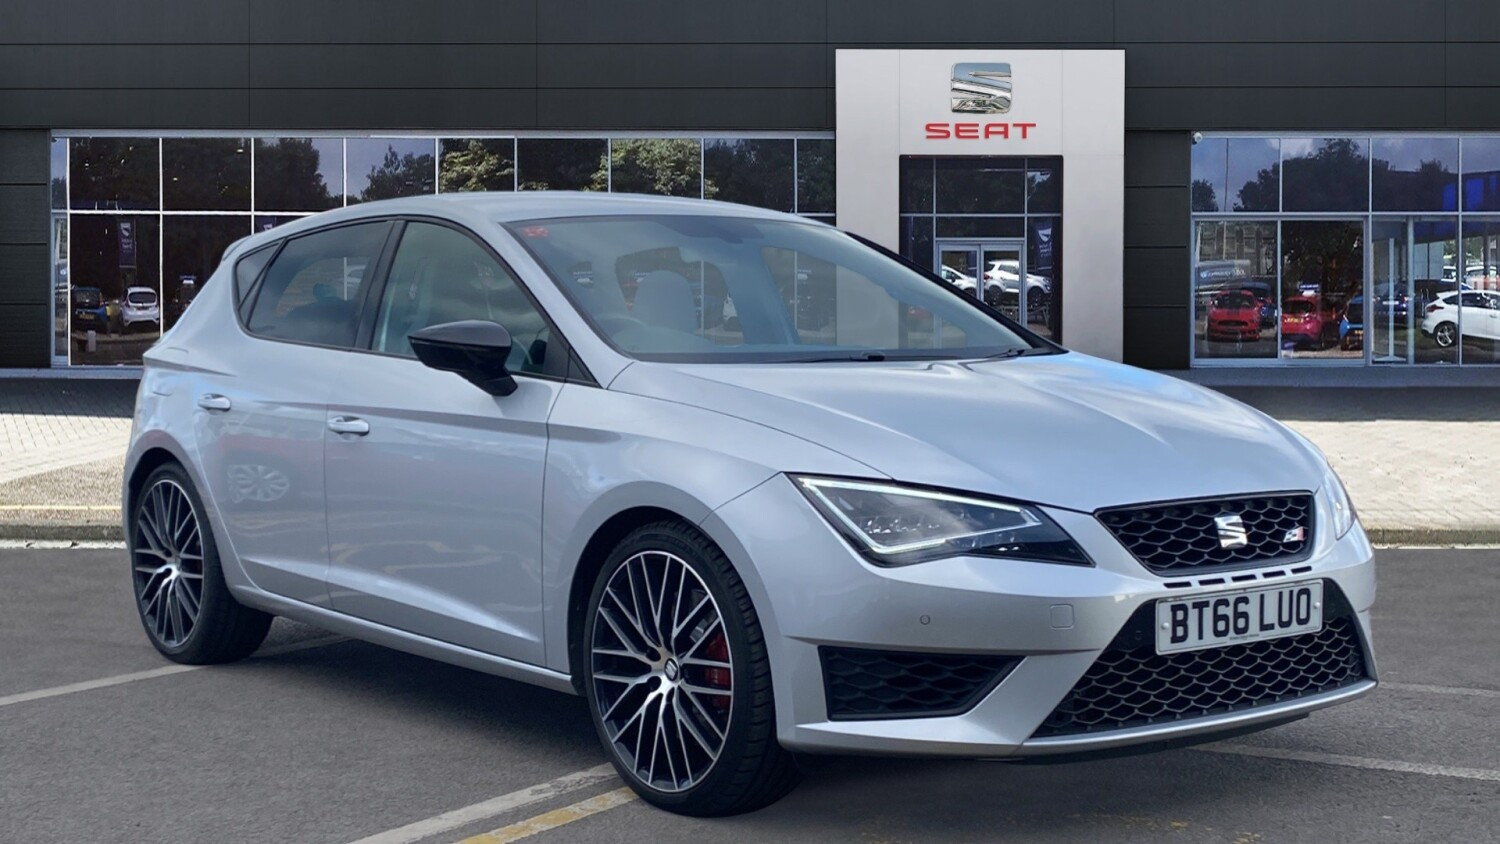 used seat leon 2 0 tsi cupra black 290 5dr petrol hatchback for sale vertu volkswagen. Black Bedroom Furniture Sets. Home Design Ideas